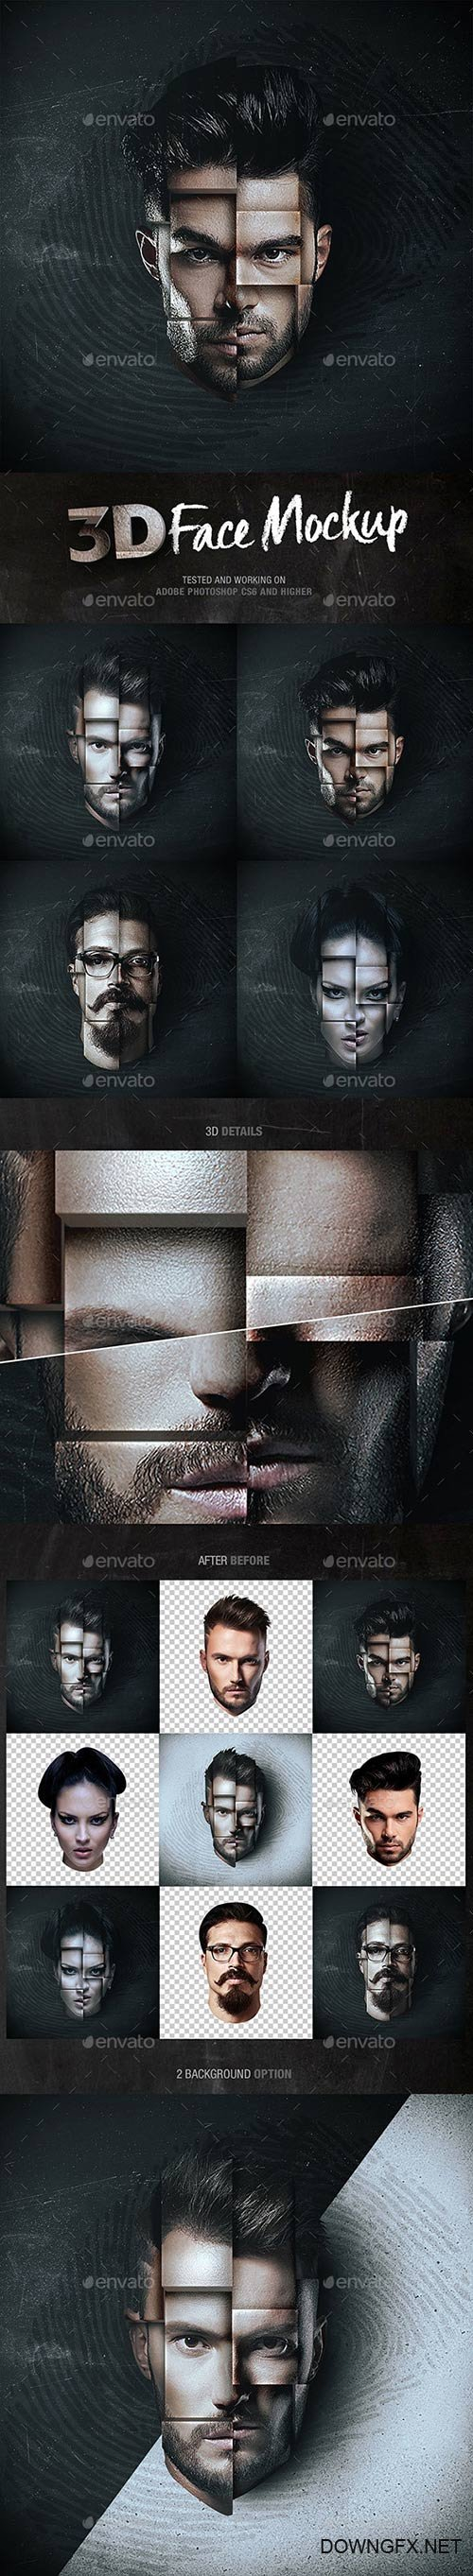 Graphicriver - 3D Face Mockup 22149241